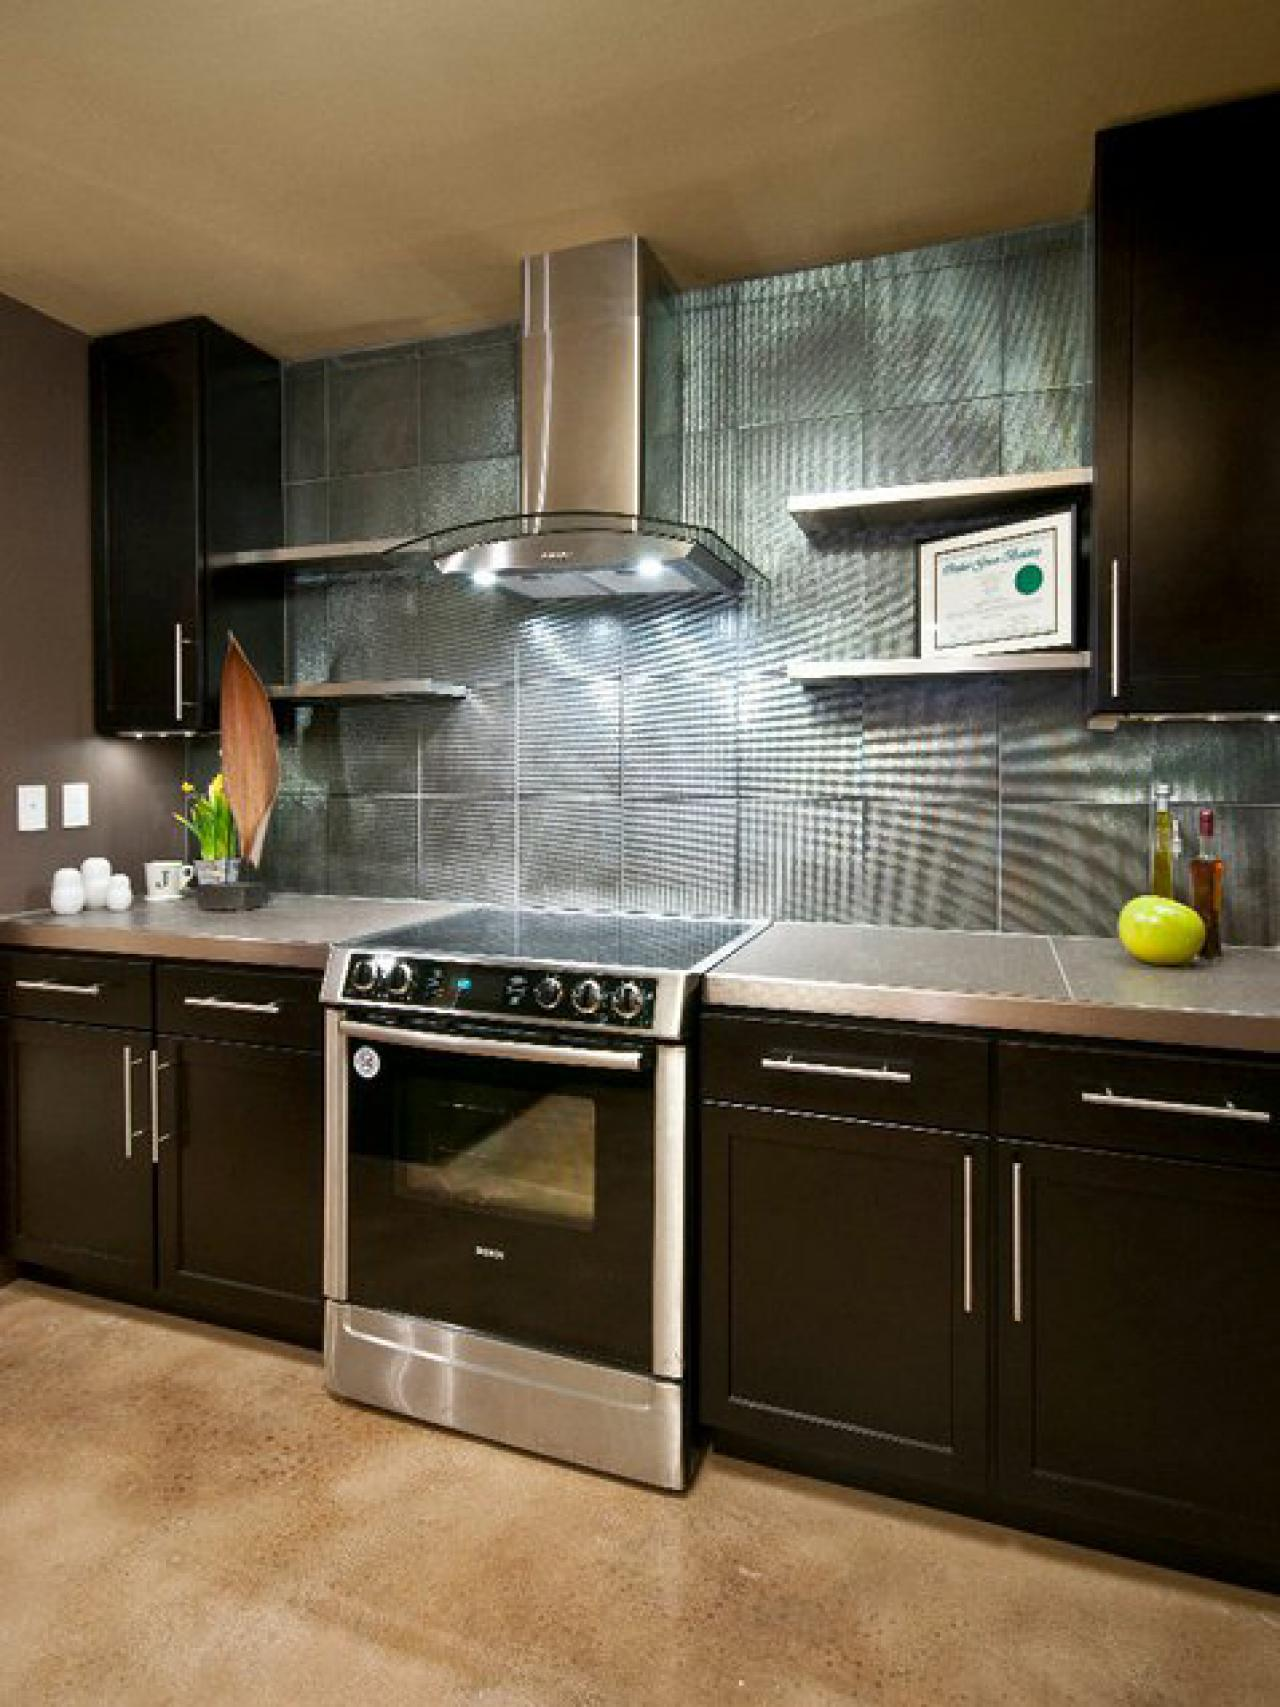 Do it yourself diy kitchen backsplash ideas hgtv pictures hgtv Kitchen backsplash ideas for small kitchens